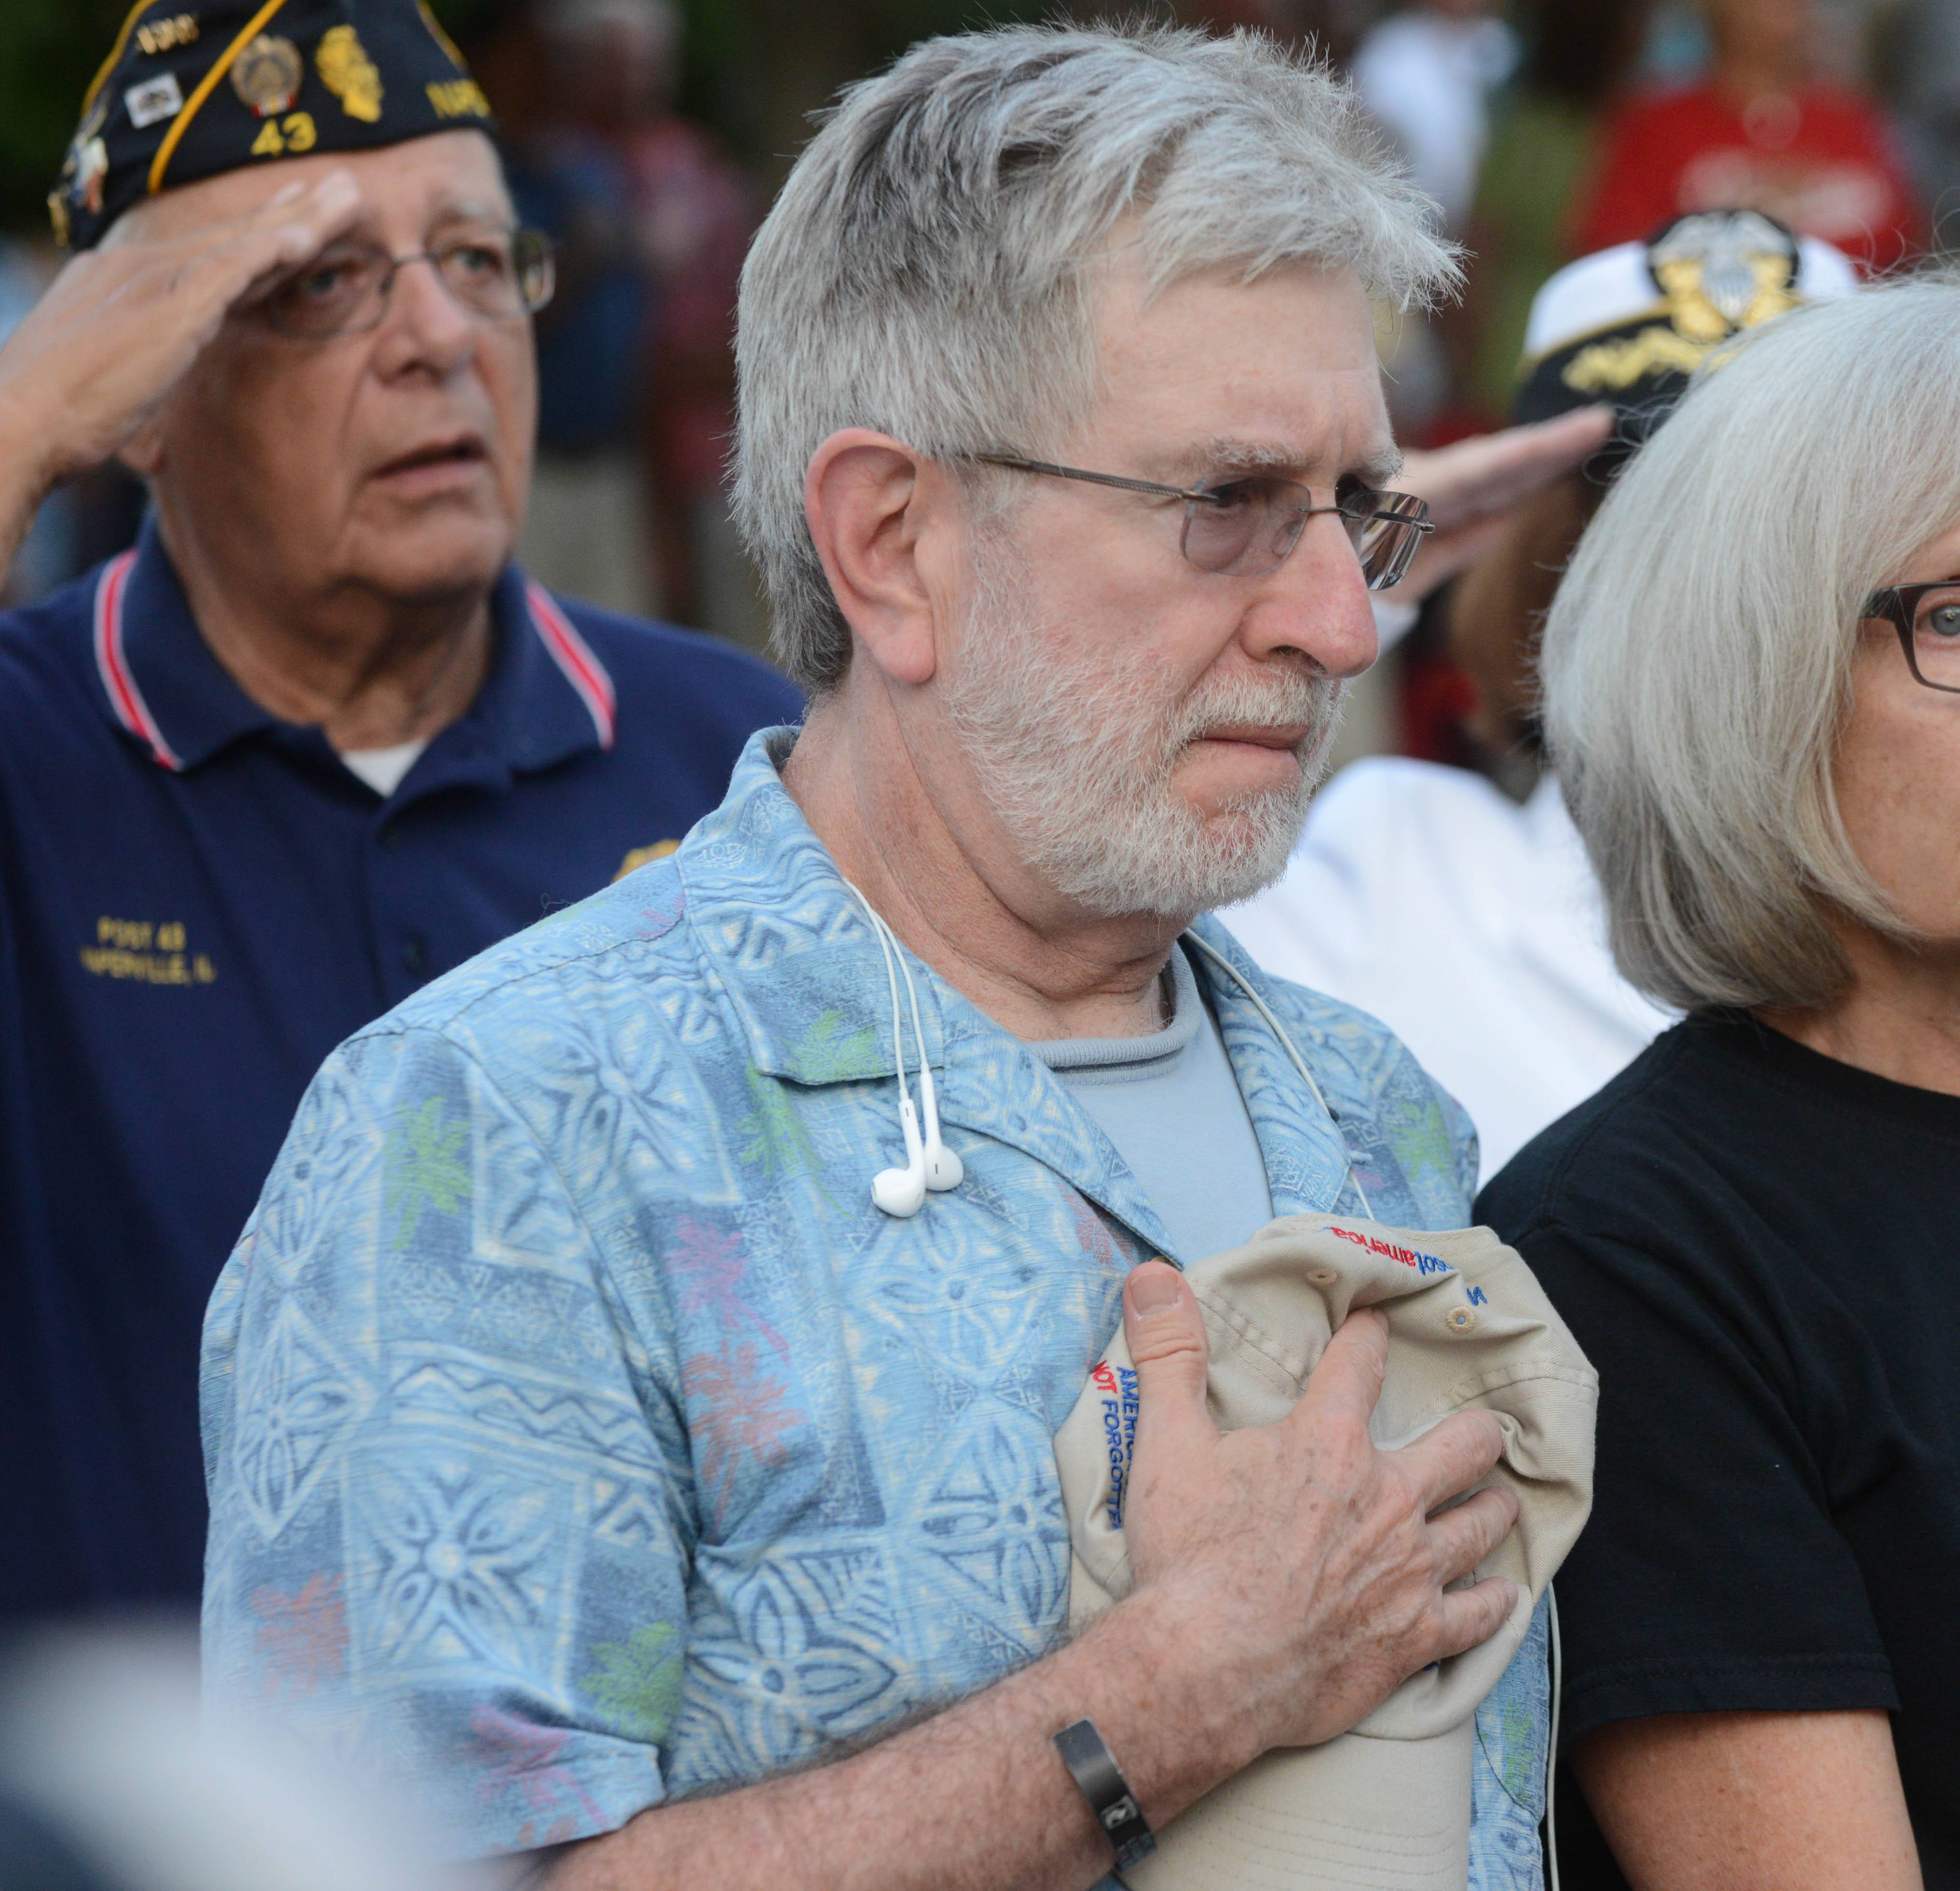 Andy Weiss of Naperville pauses during the Pledge of Allegiance Wednesday at the September 11th memorial service in Naperville.